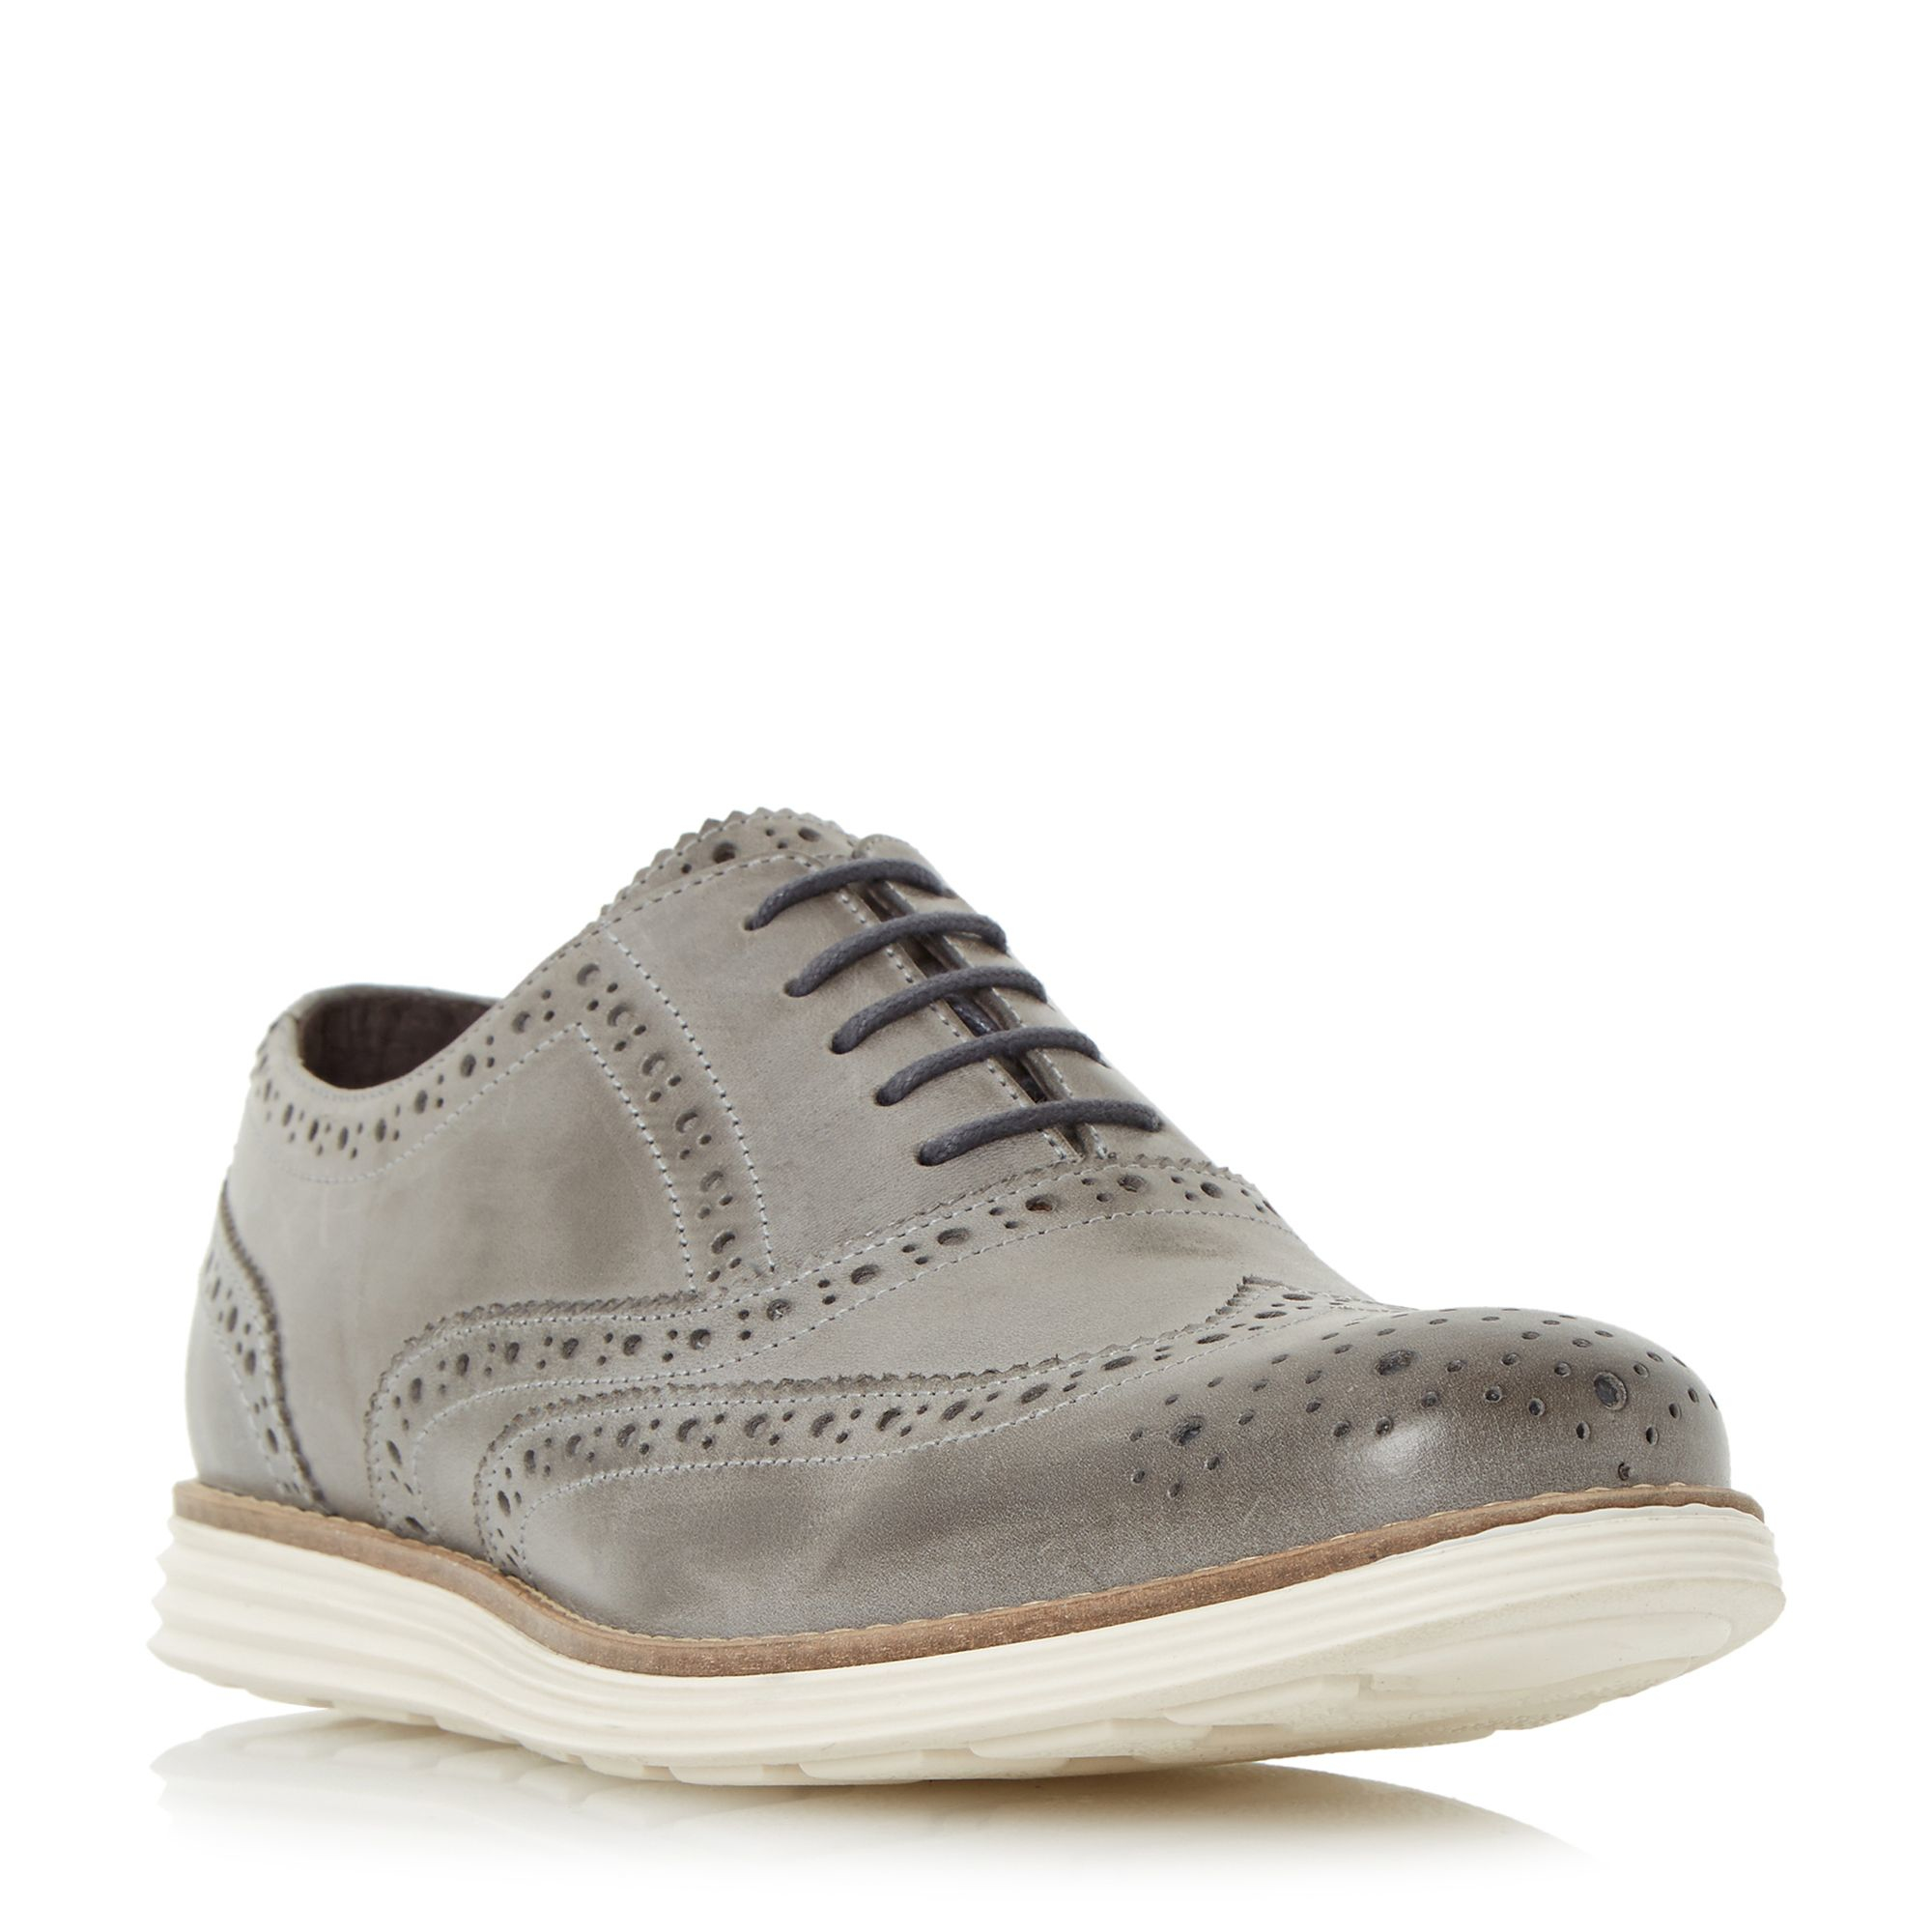 Lyst - Dune Bayside Wedge Shoes in Gray for Men